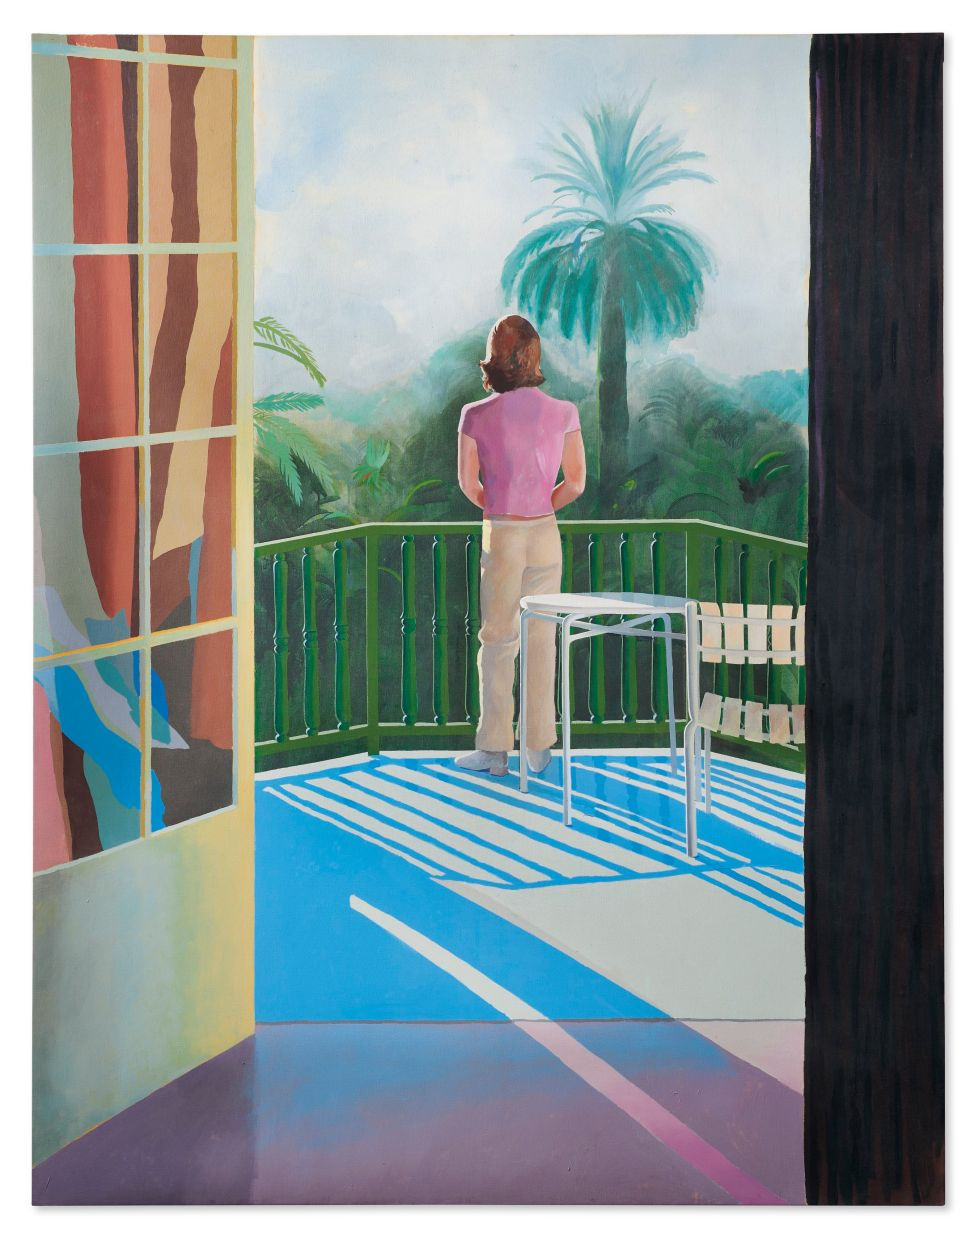 Could David Hockney's 'Sur la Terrasse' Exceed Its $45M High Estimate at Christie's?